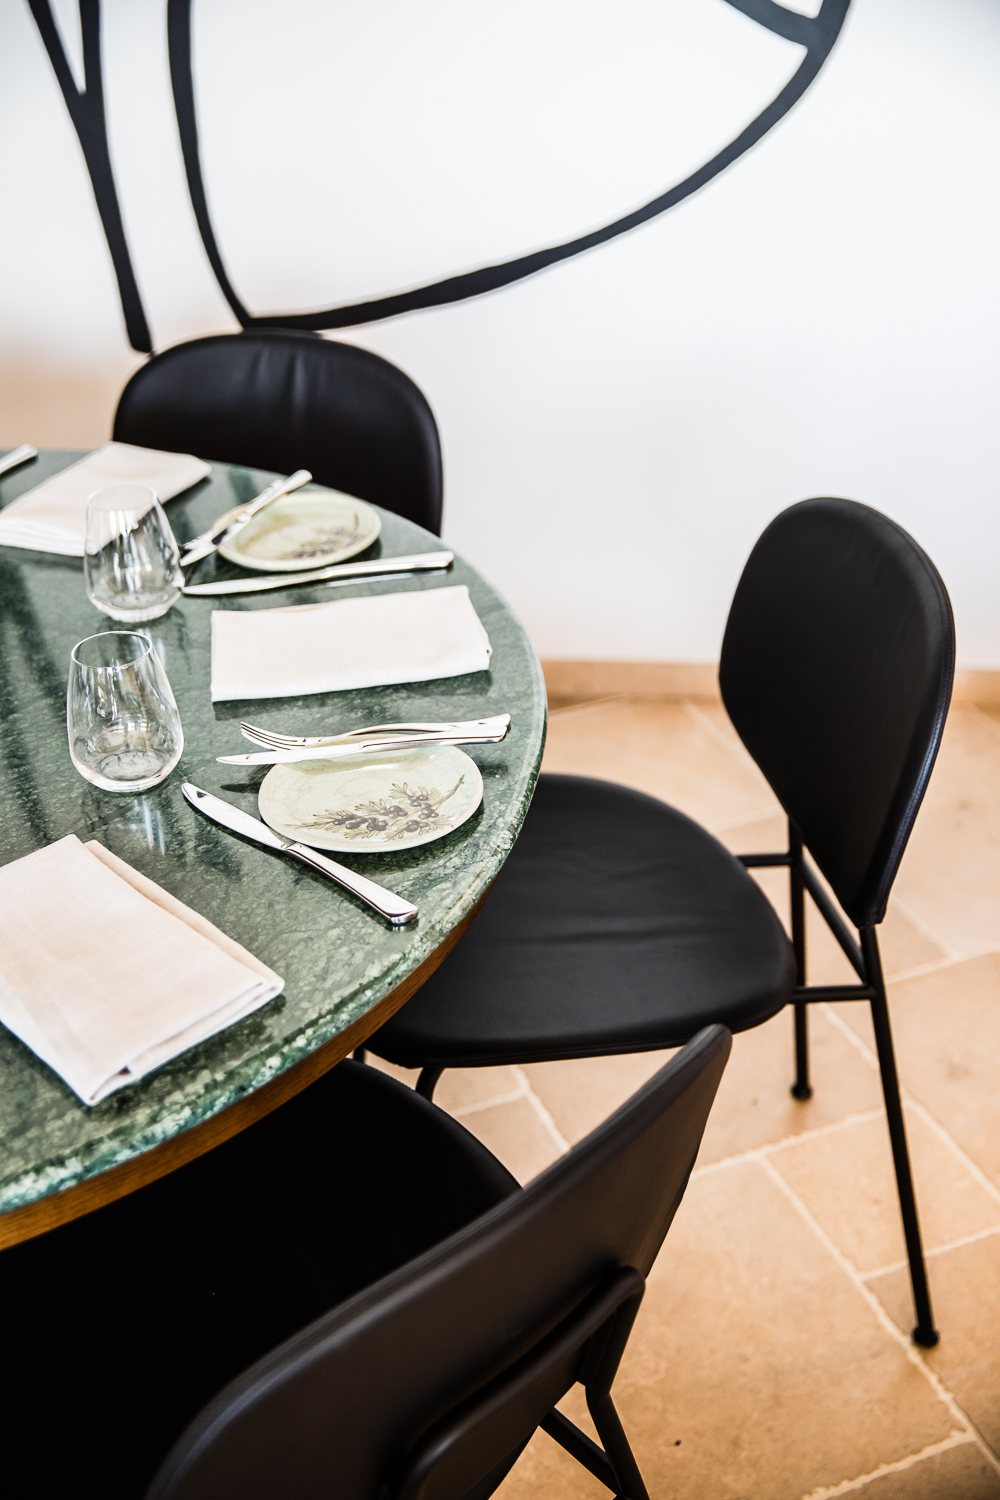 Table in the Ete restaurant